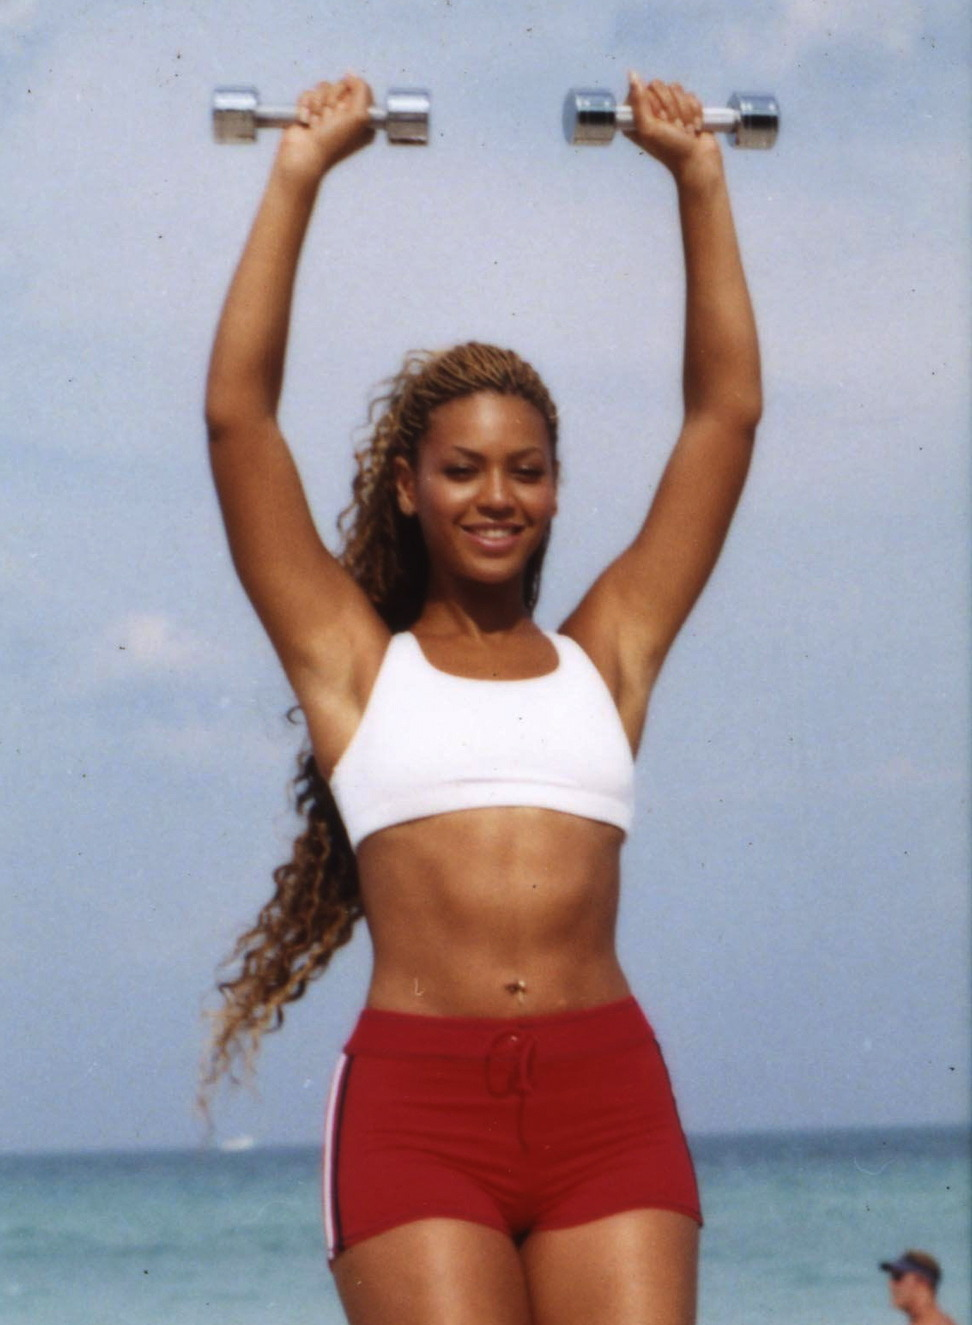 beyoncespenis: beyonce lifting weights so shes one day able to hold all 16 of her grammys at once